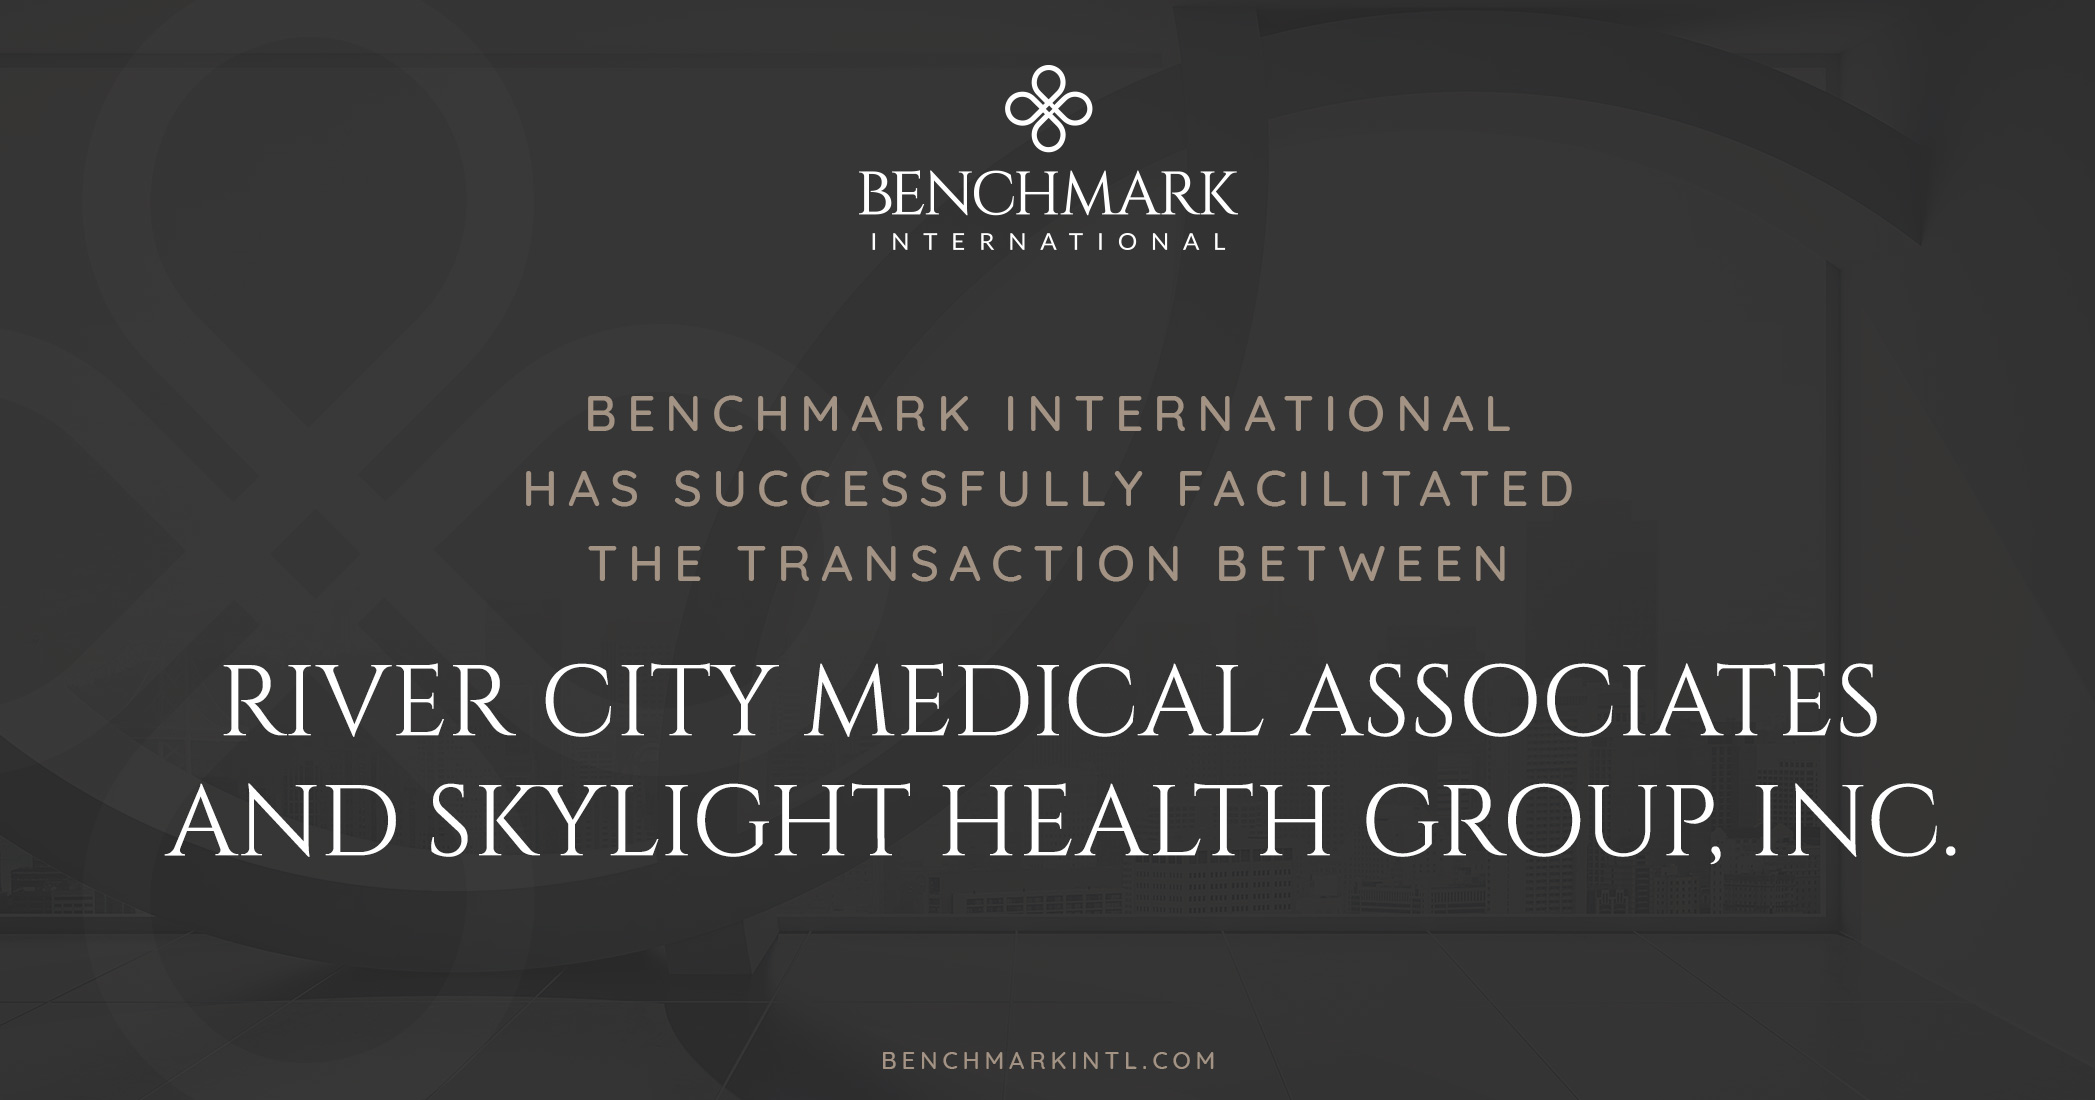 Benchmark International Successfully Facilitated the Transaction Between River City Medical Associates and Skylight Health Group, Inc.